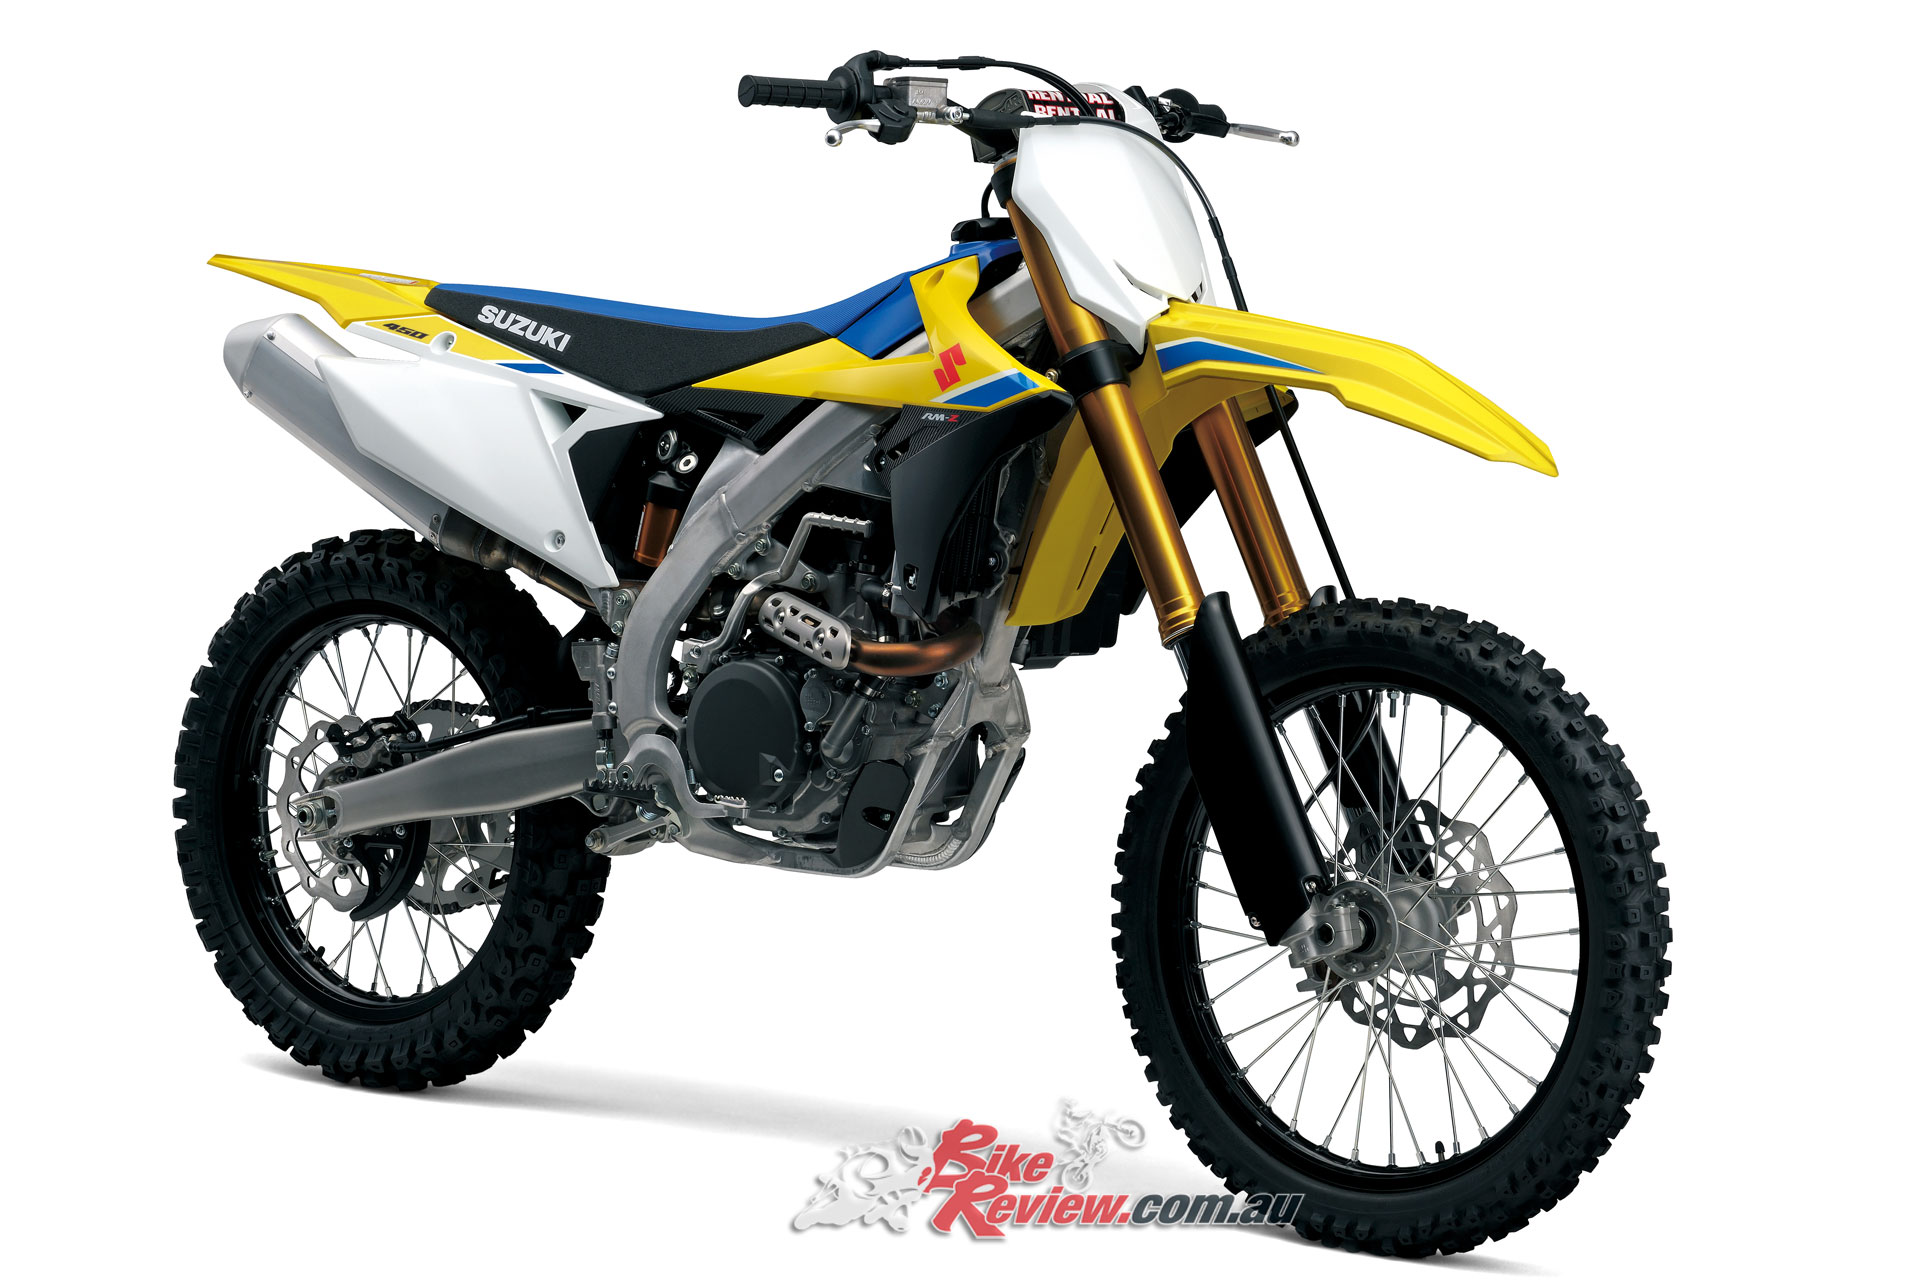 suzuki announce new for 2018 rm z450 bike review. Black Bedroom Furniture Sets. Home Design Ideas